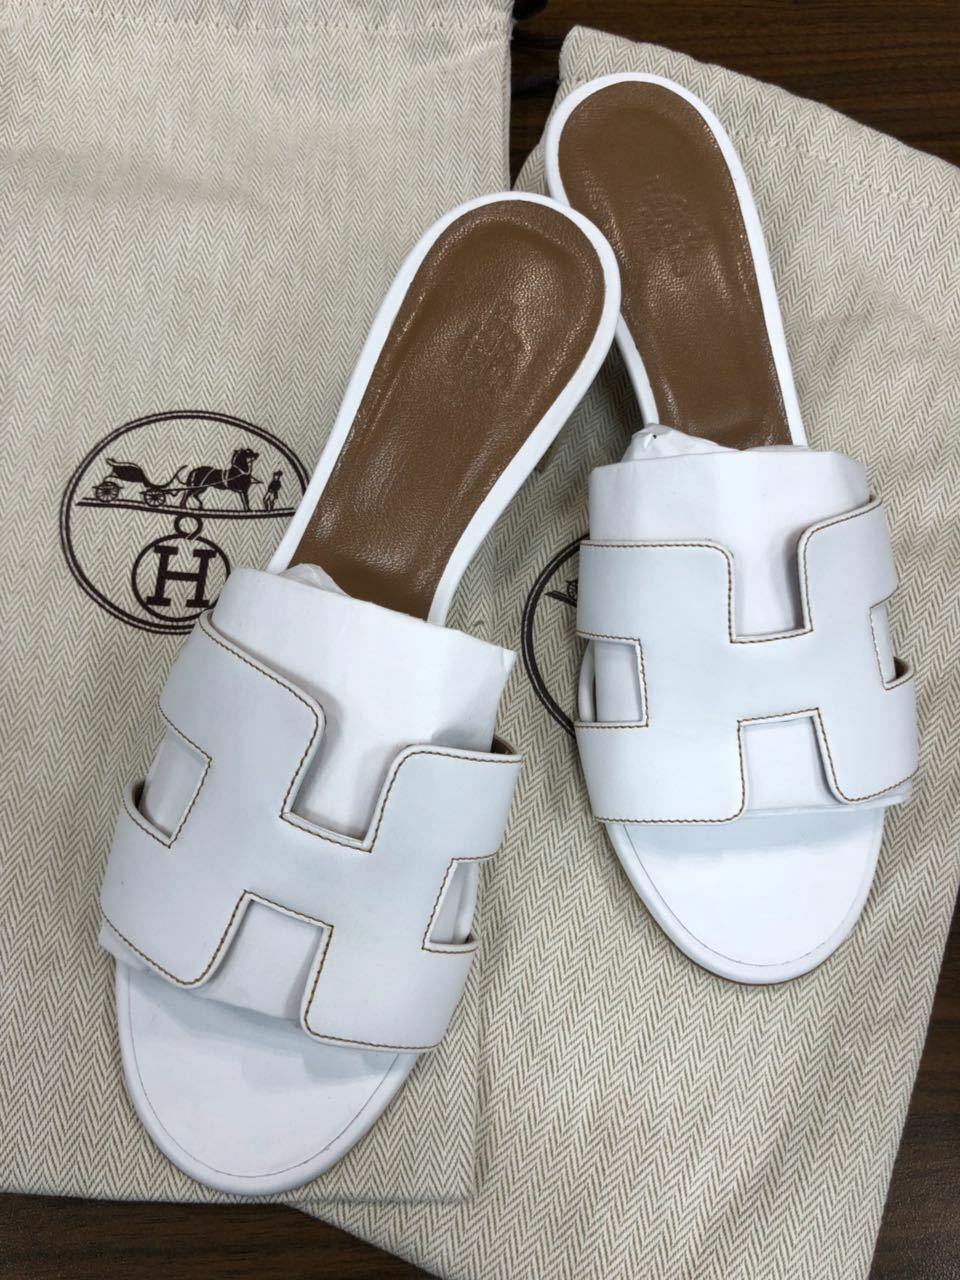 Hermes sandal Oasis, available size from 36 to 40